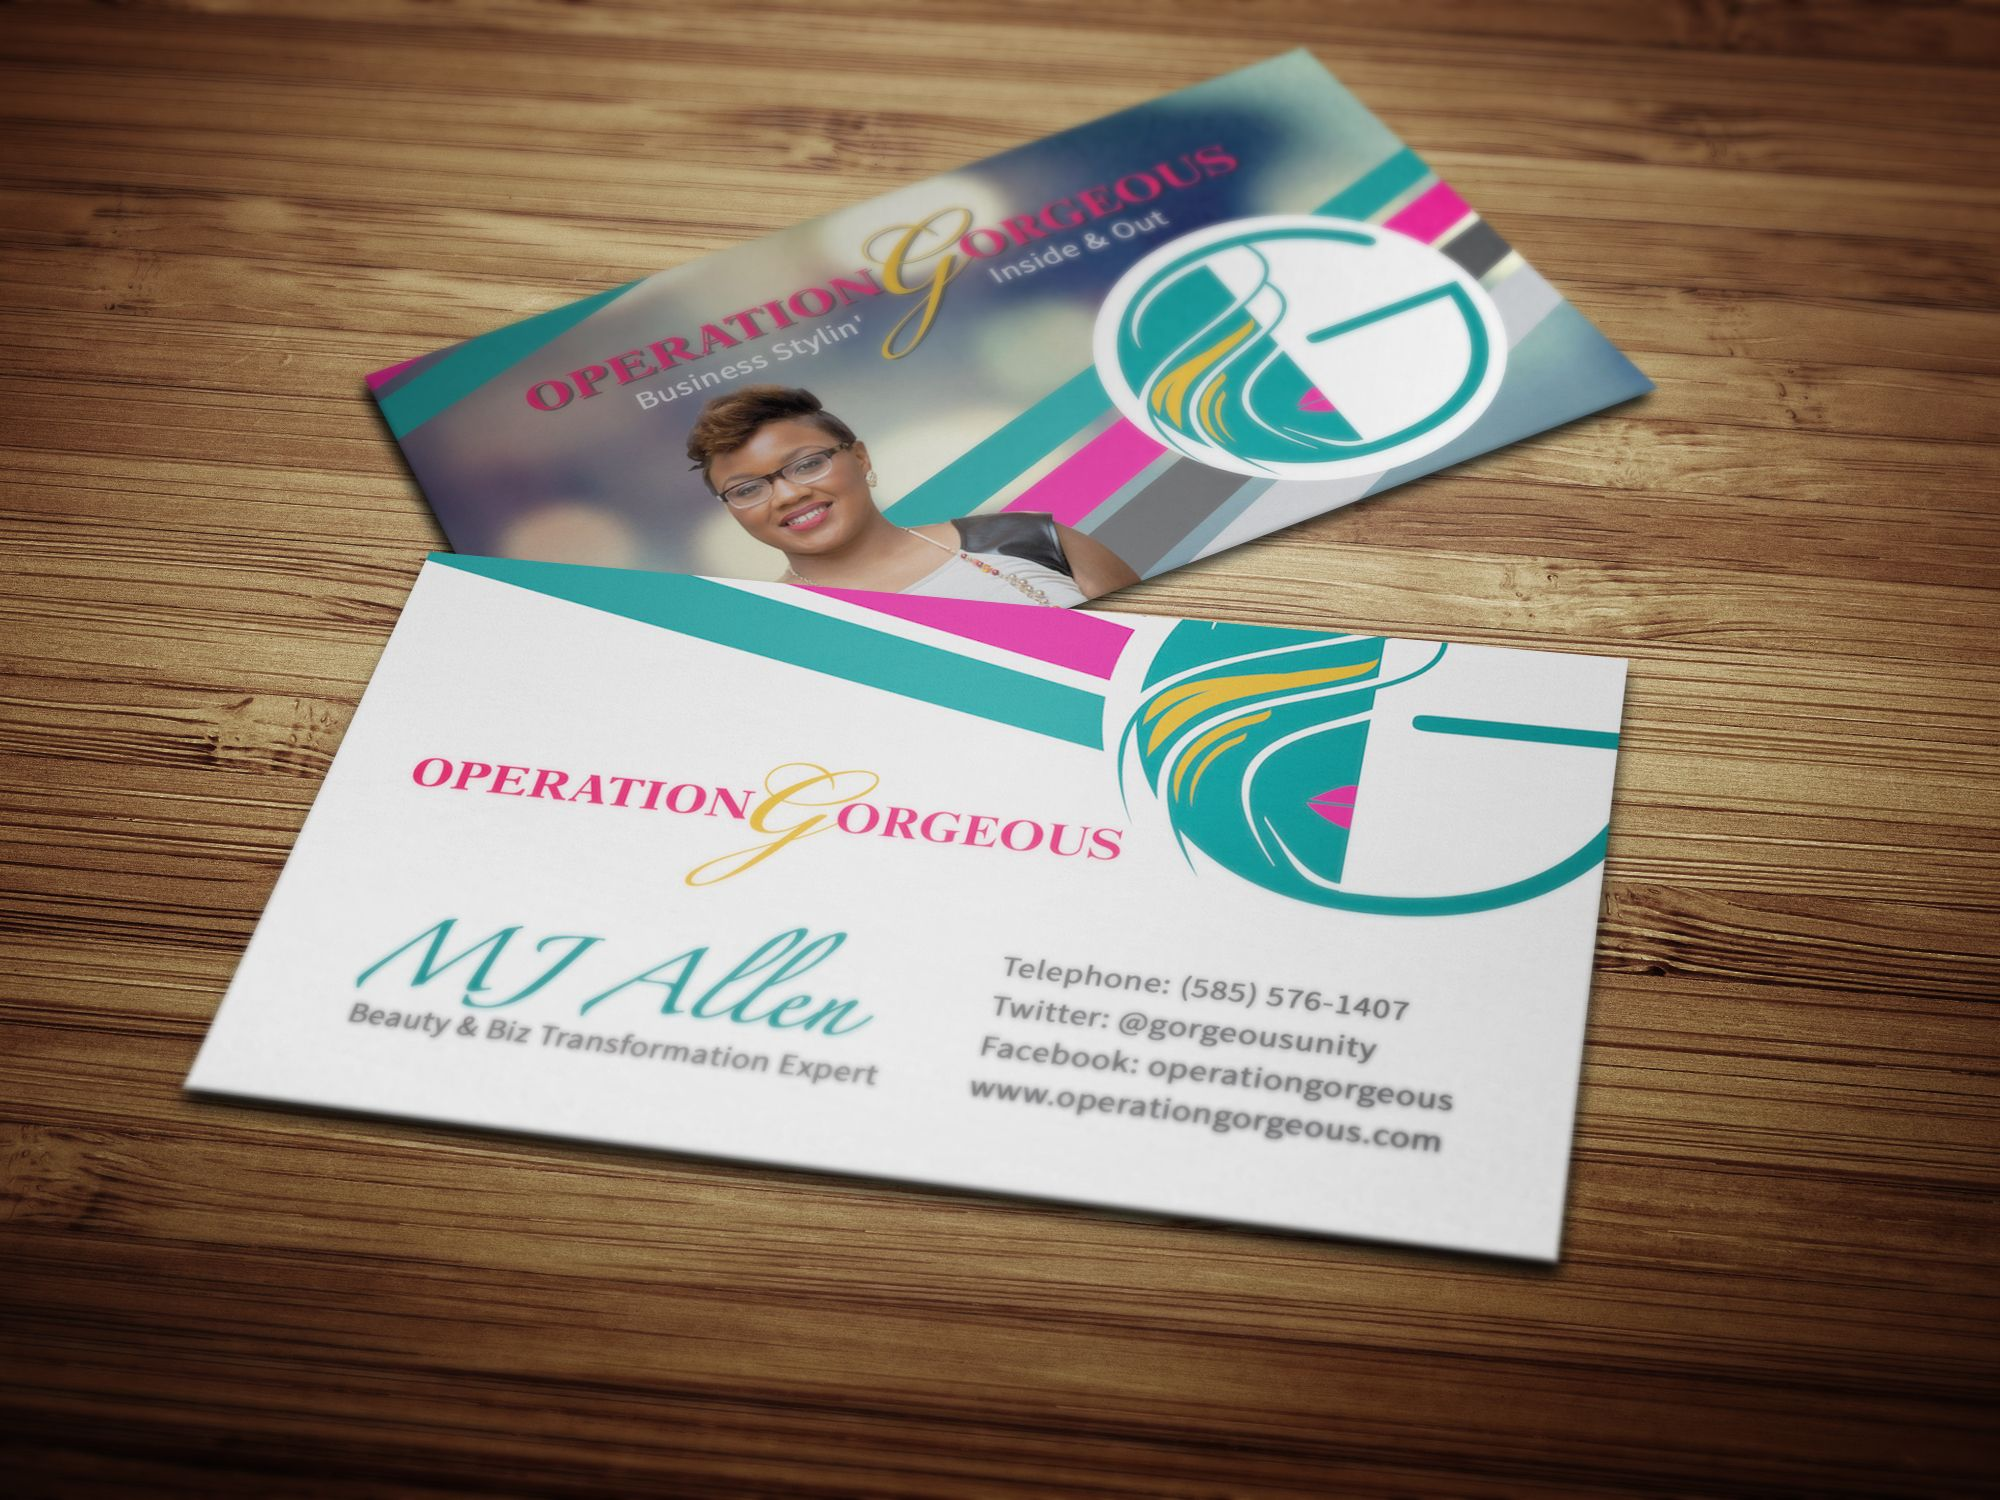 Custom design outstanding business cards for you | Business cards ...